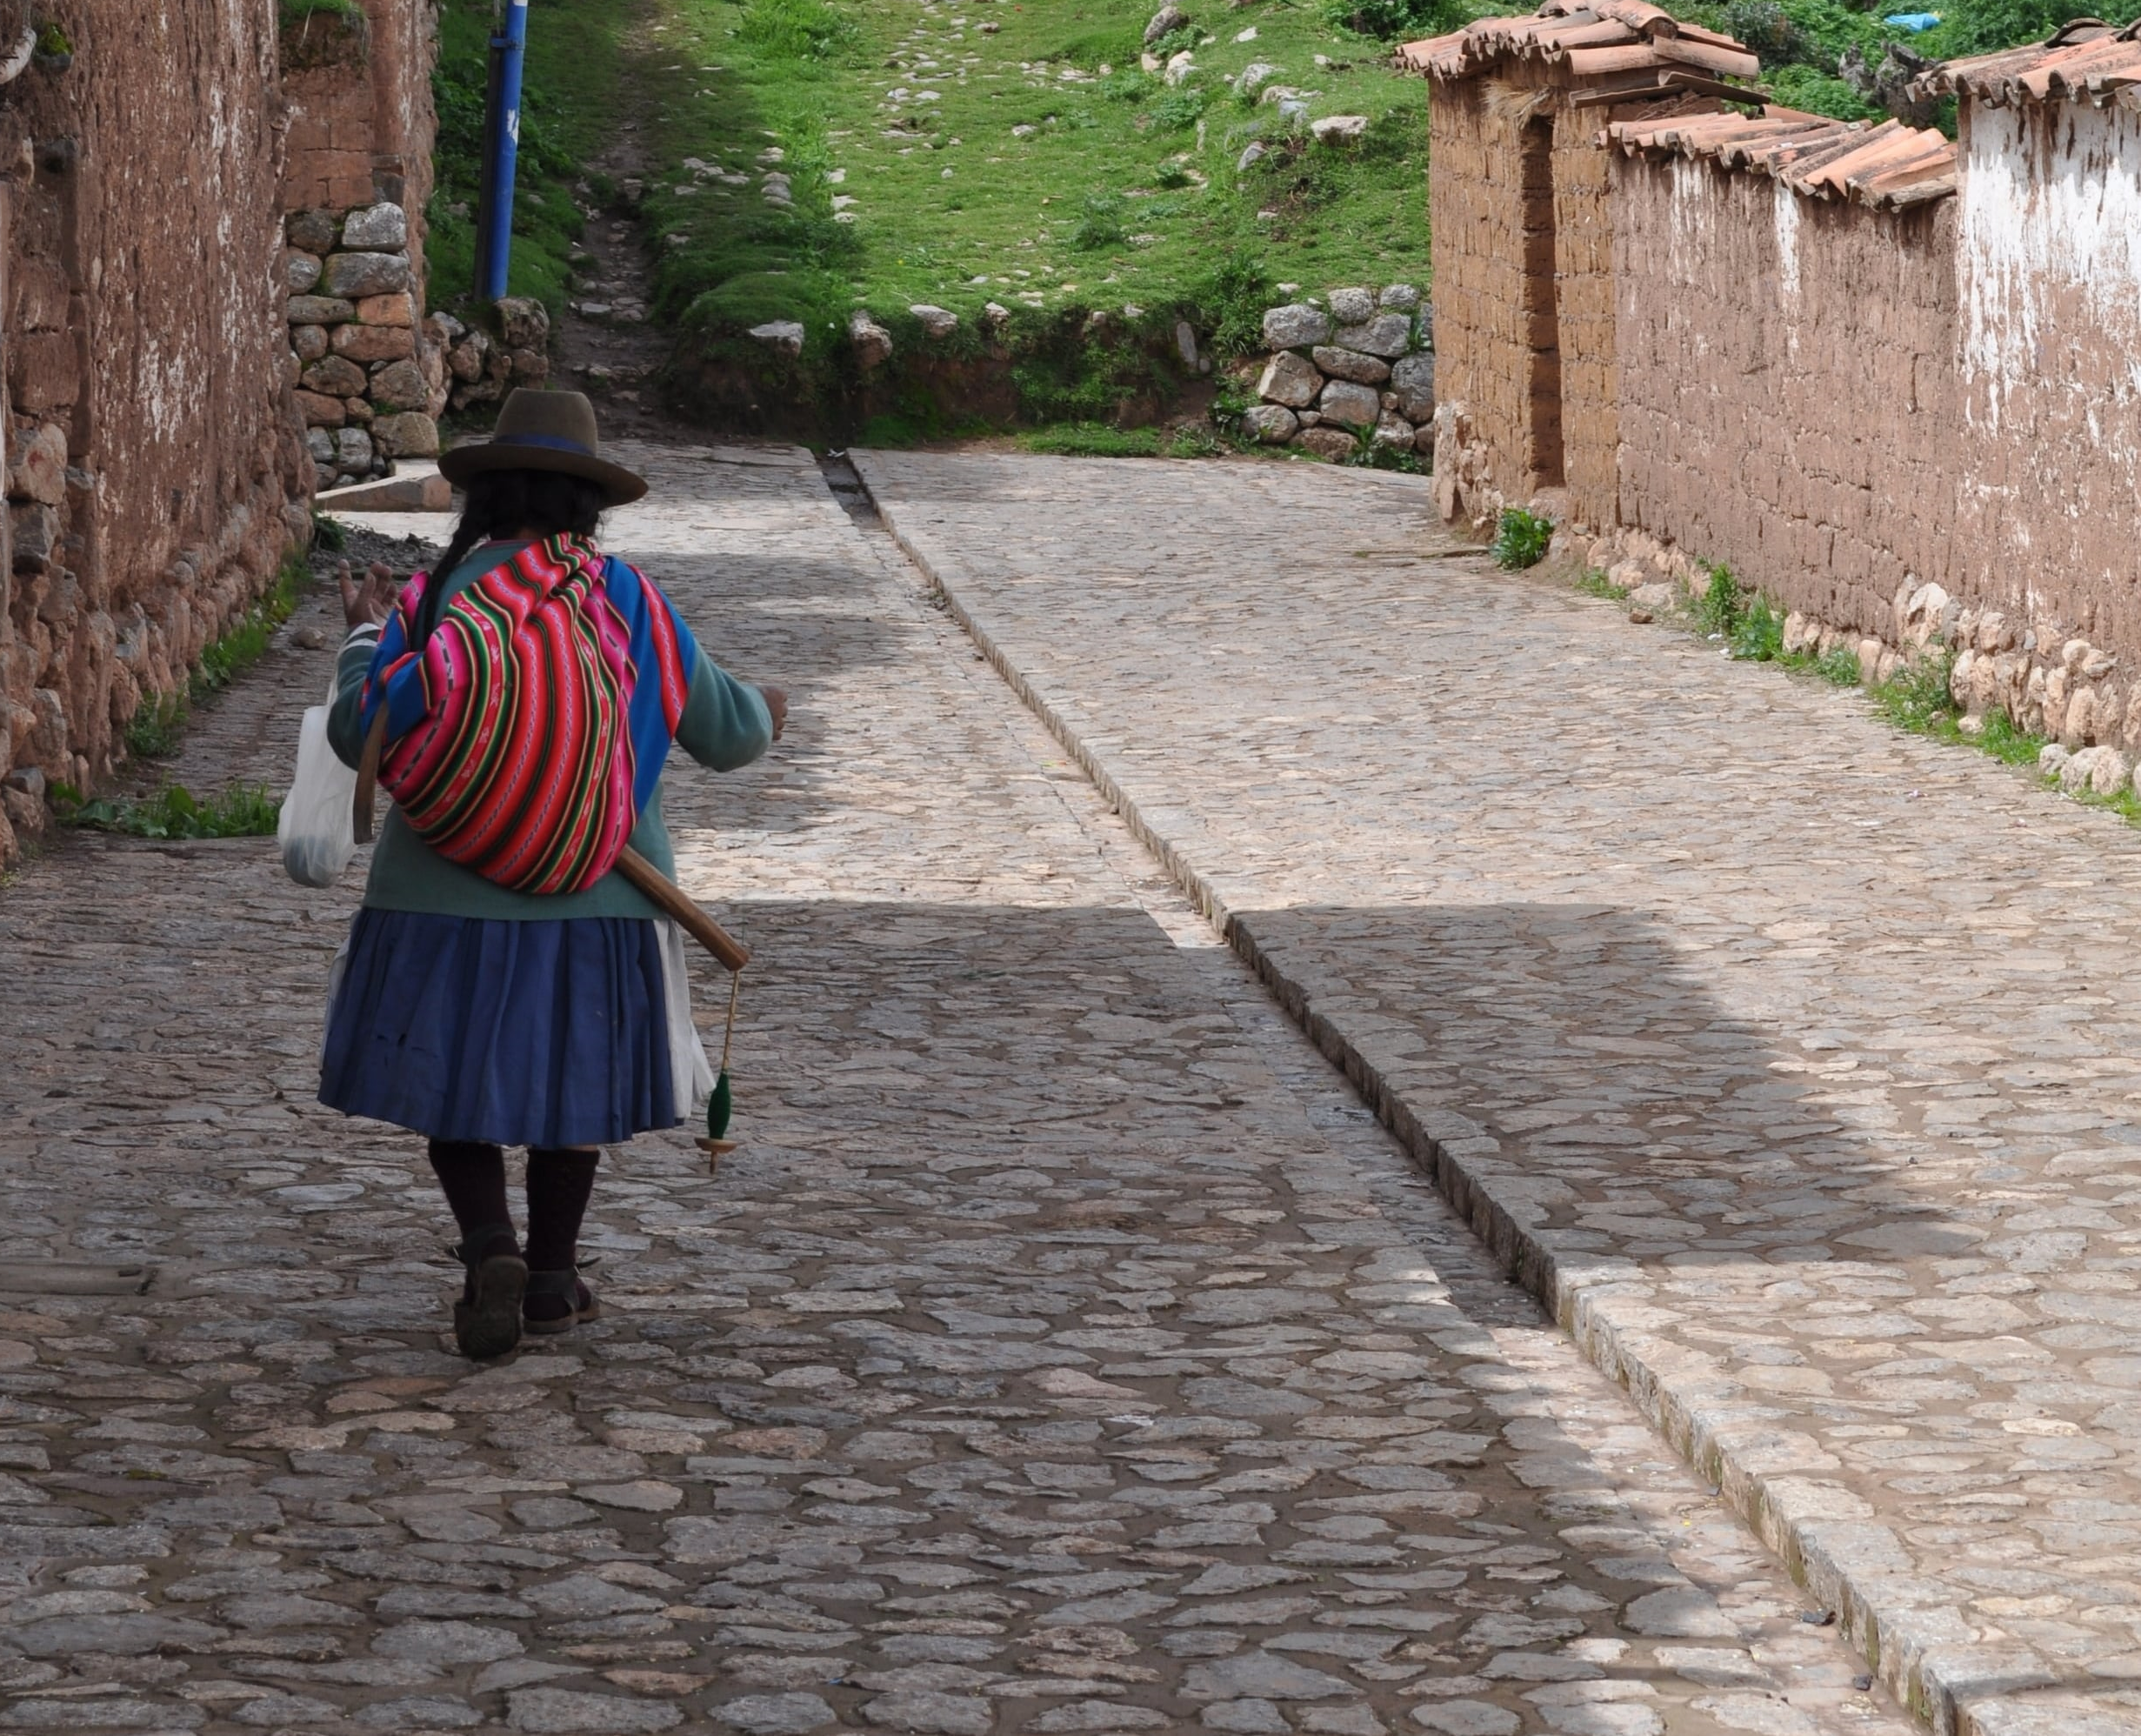 This place offers a marvelous example of the traditional Andean life. Photo: Pamy Rojas